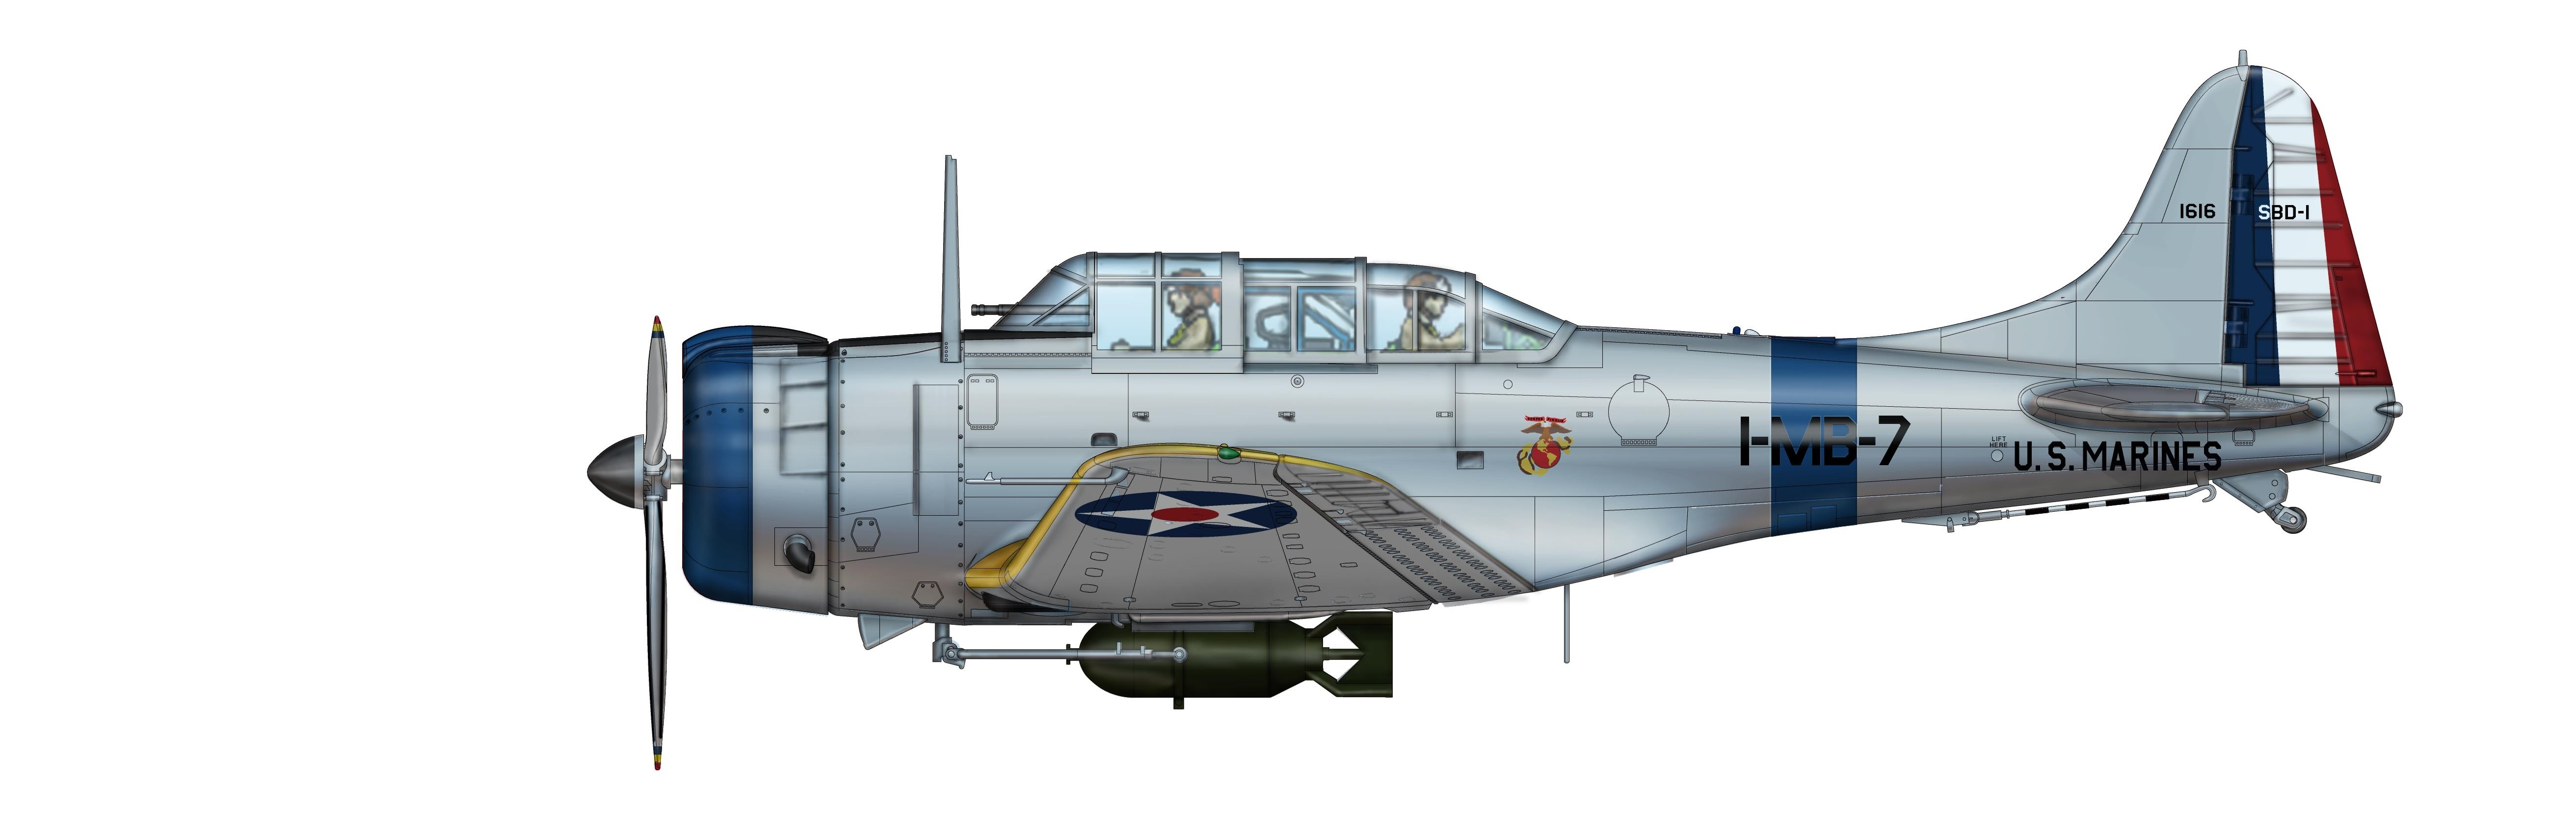 Hobby Master Air Power Series Douglas Sbd 1 Dauntless Us